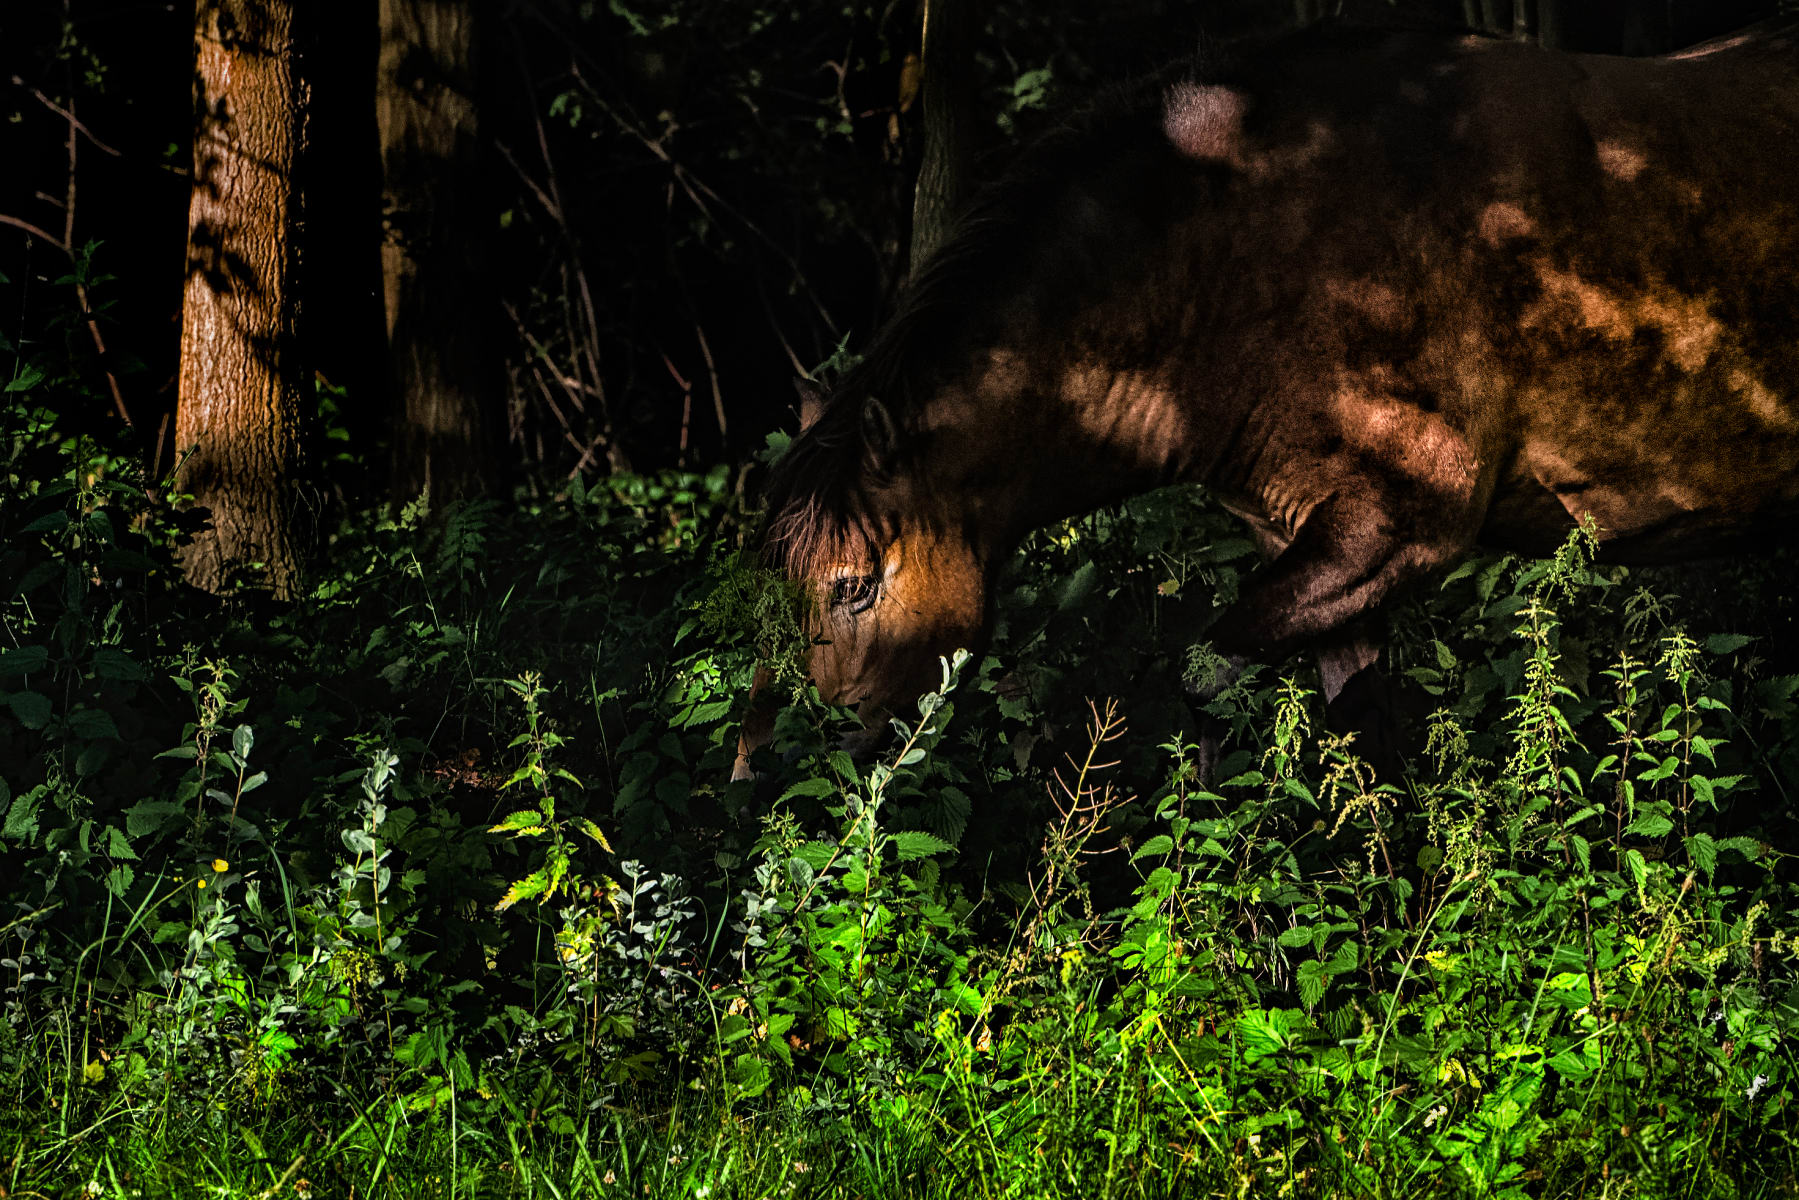 horse in dappled light at edge of forest